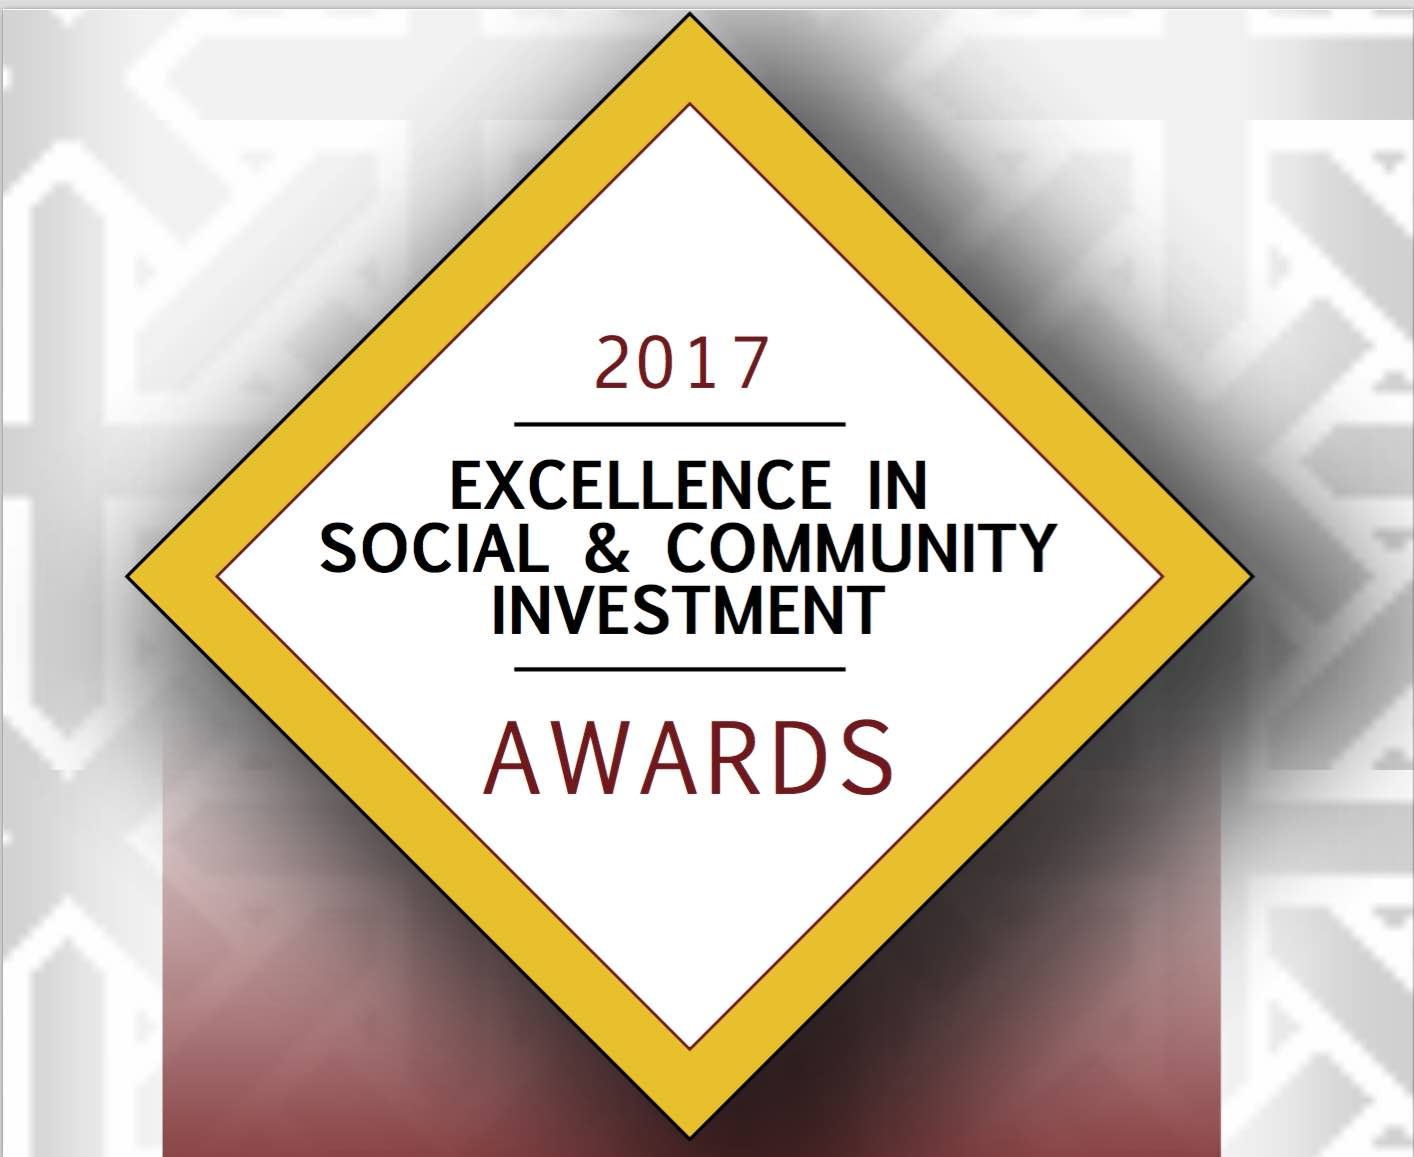 The 2017 Social & Community Investment Awards